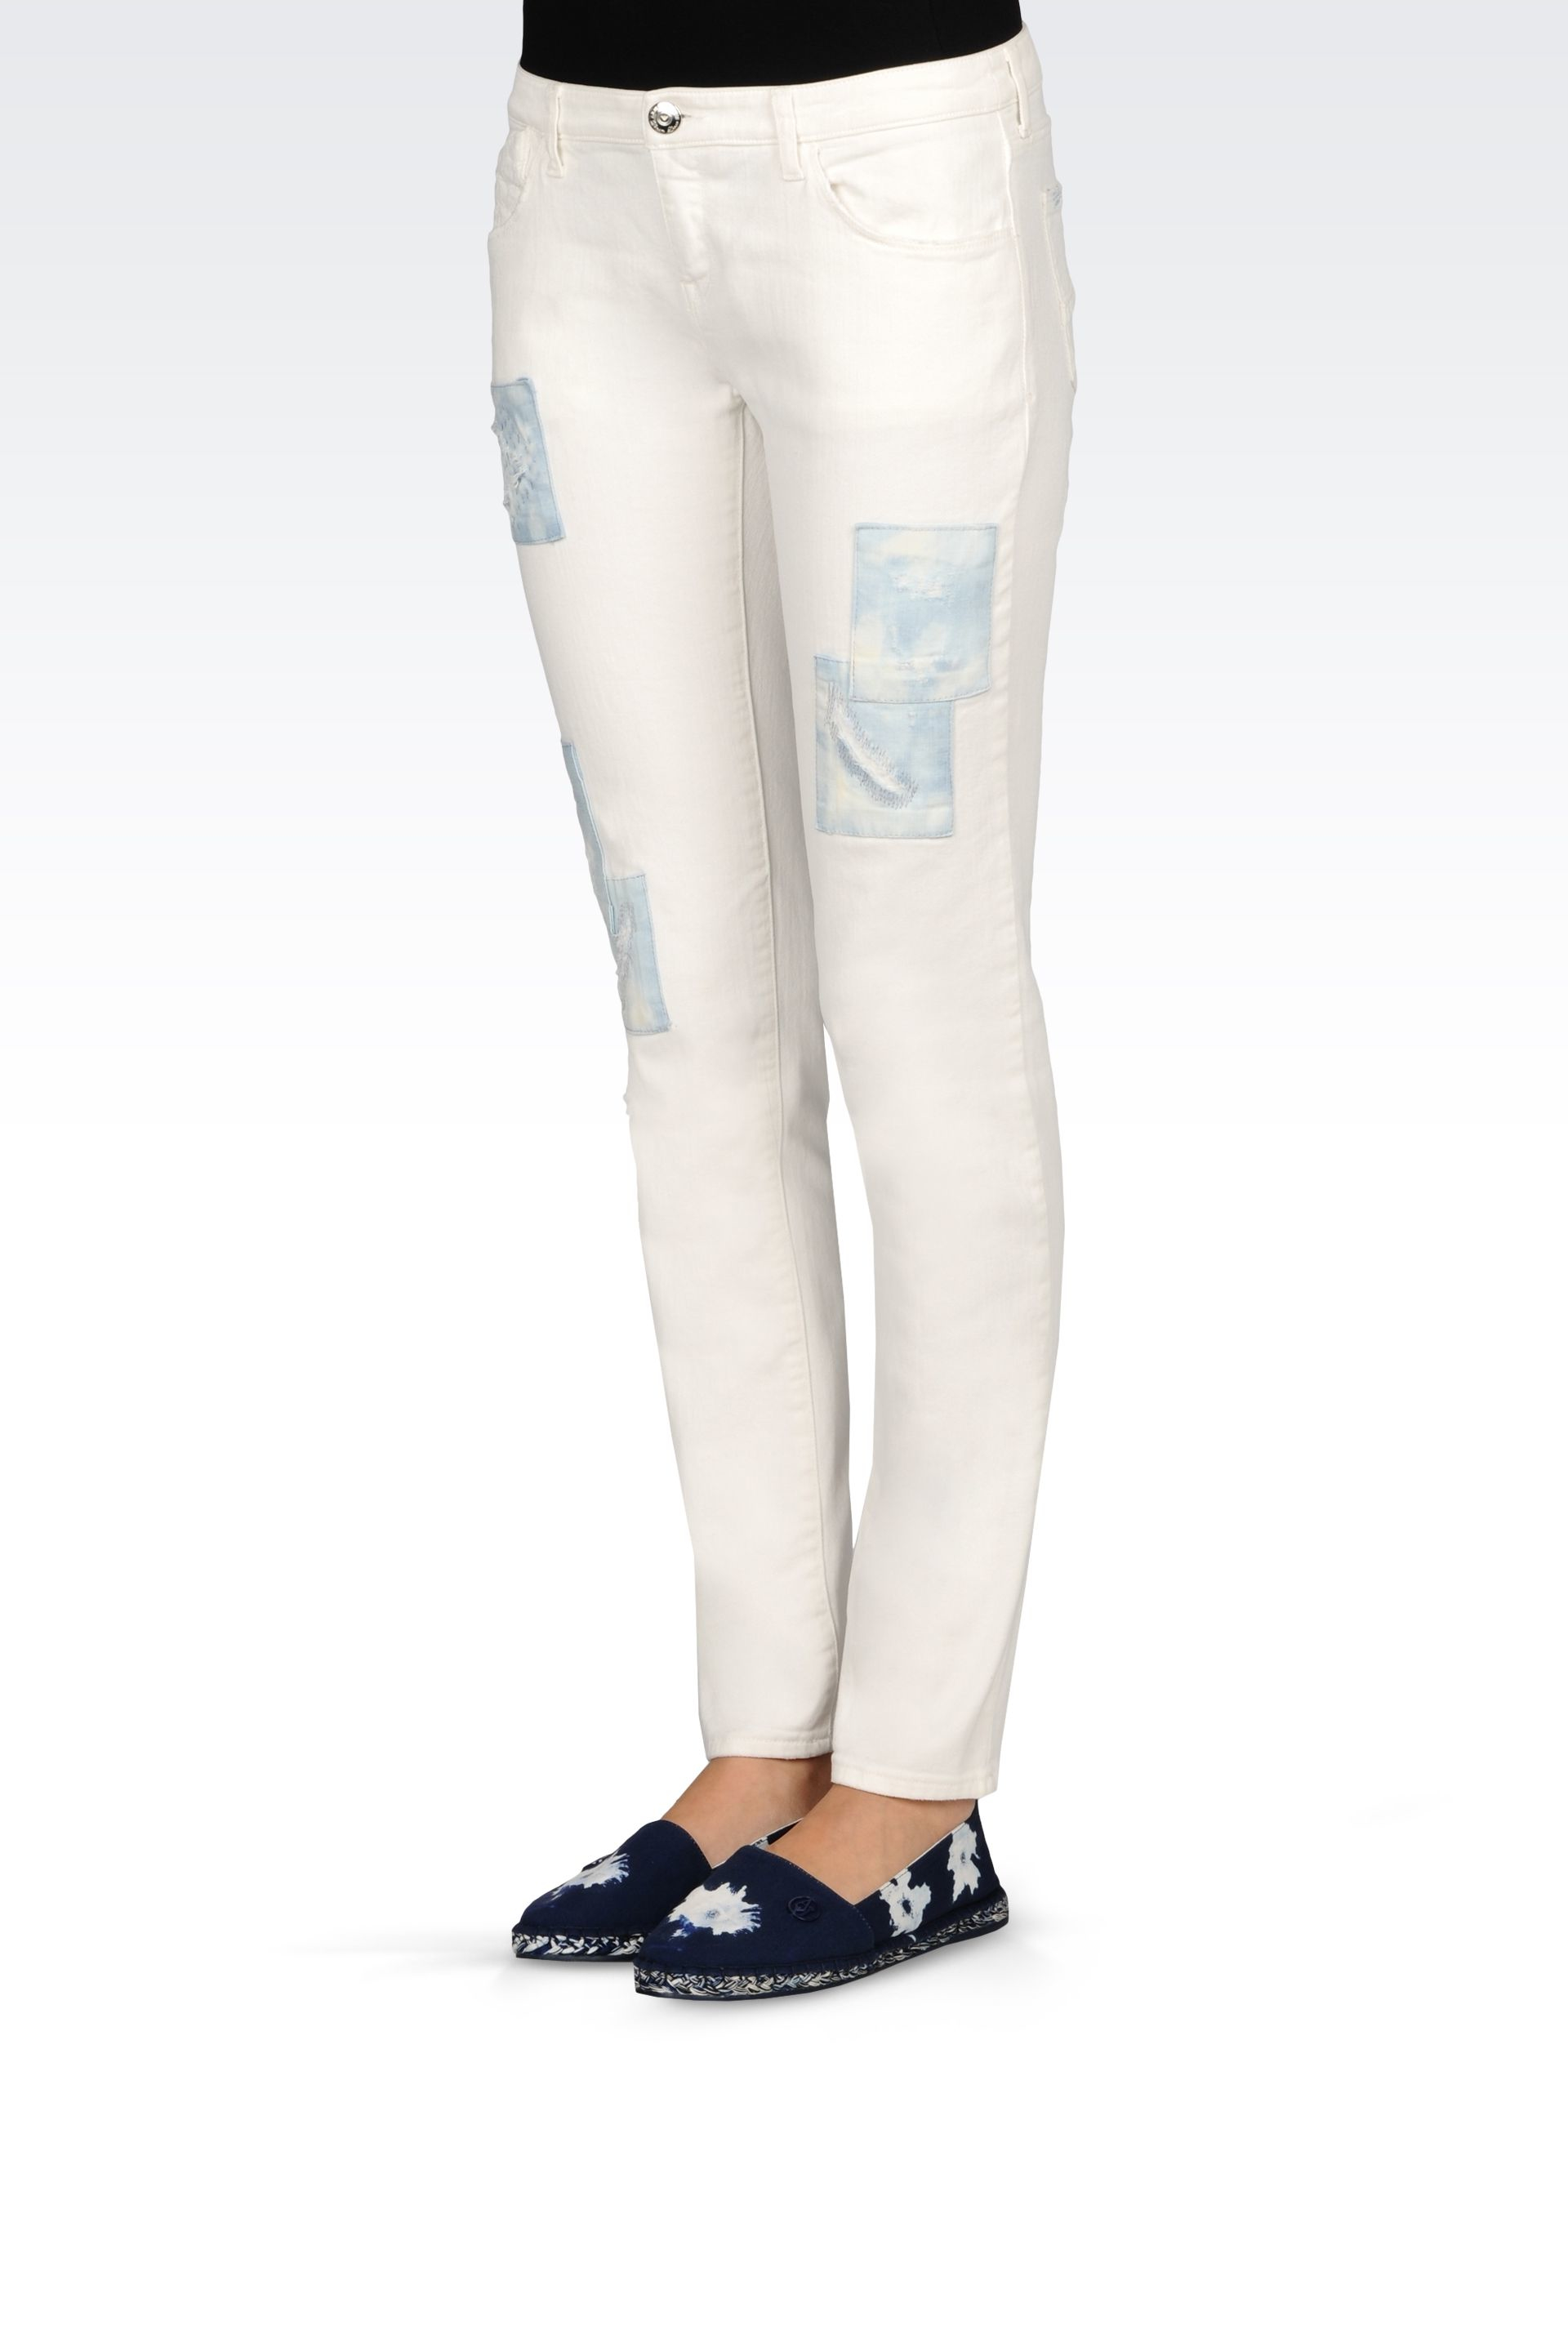 Shop eBay for great deals on Levi's Men's White Wash Jeans. You'll find new or used products in Levi's Men's White Wash Jeans on eBay. Free shipping on selected items.